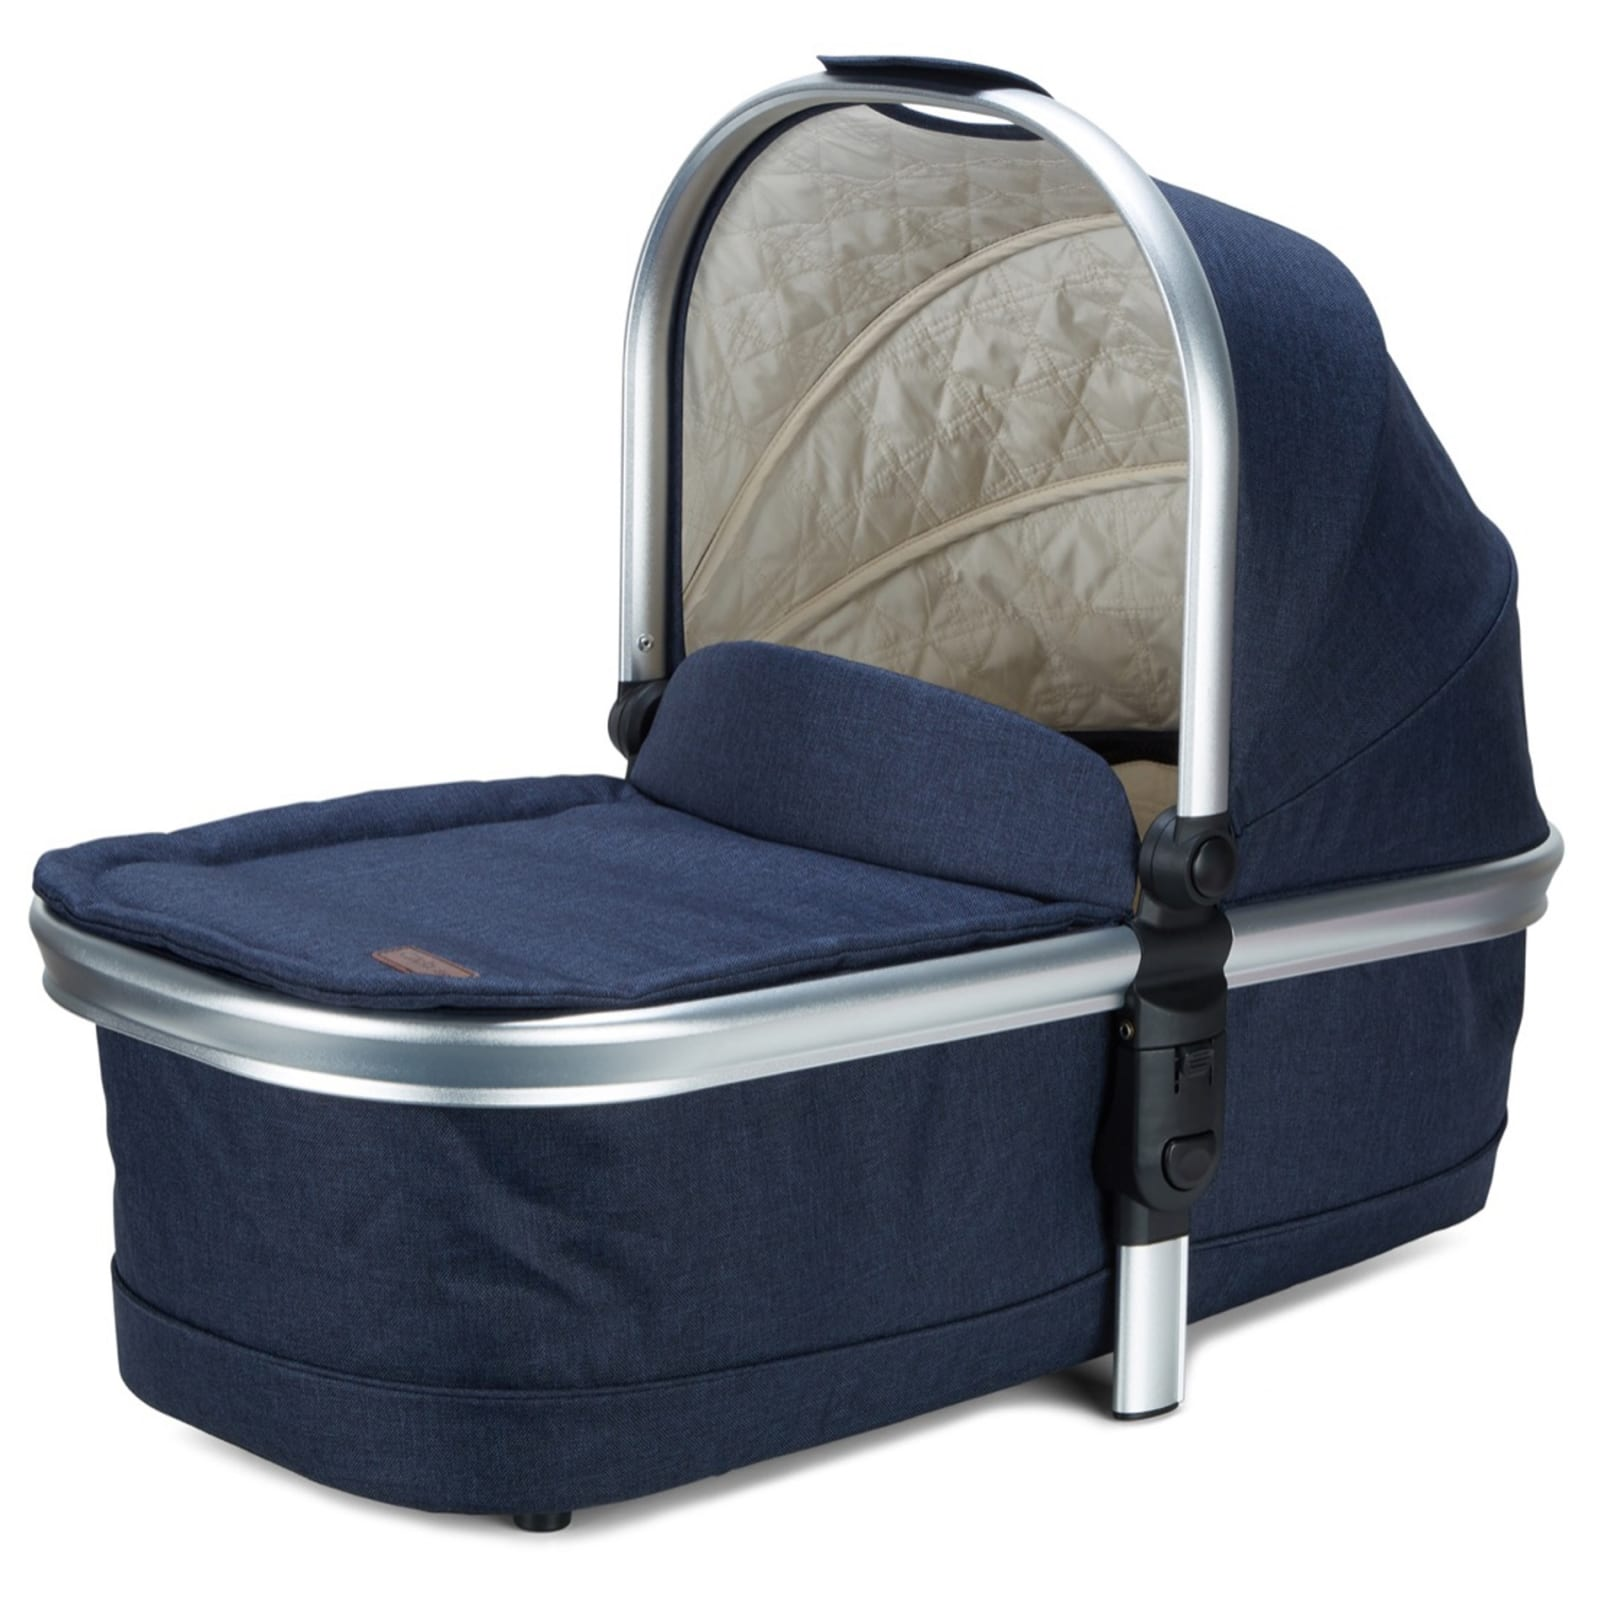 Cupla Duo 3 in 1 Travel System – Navy product image